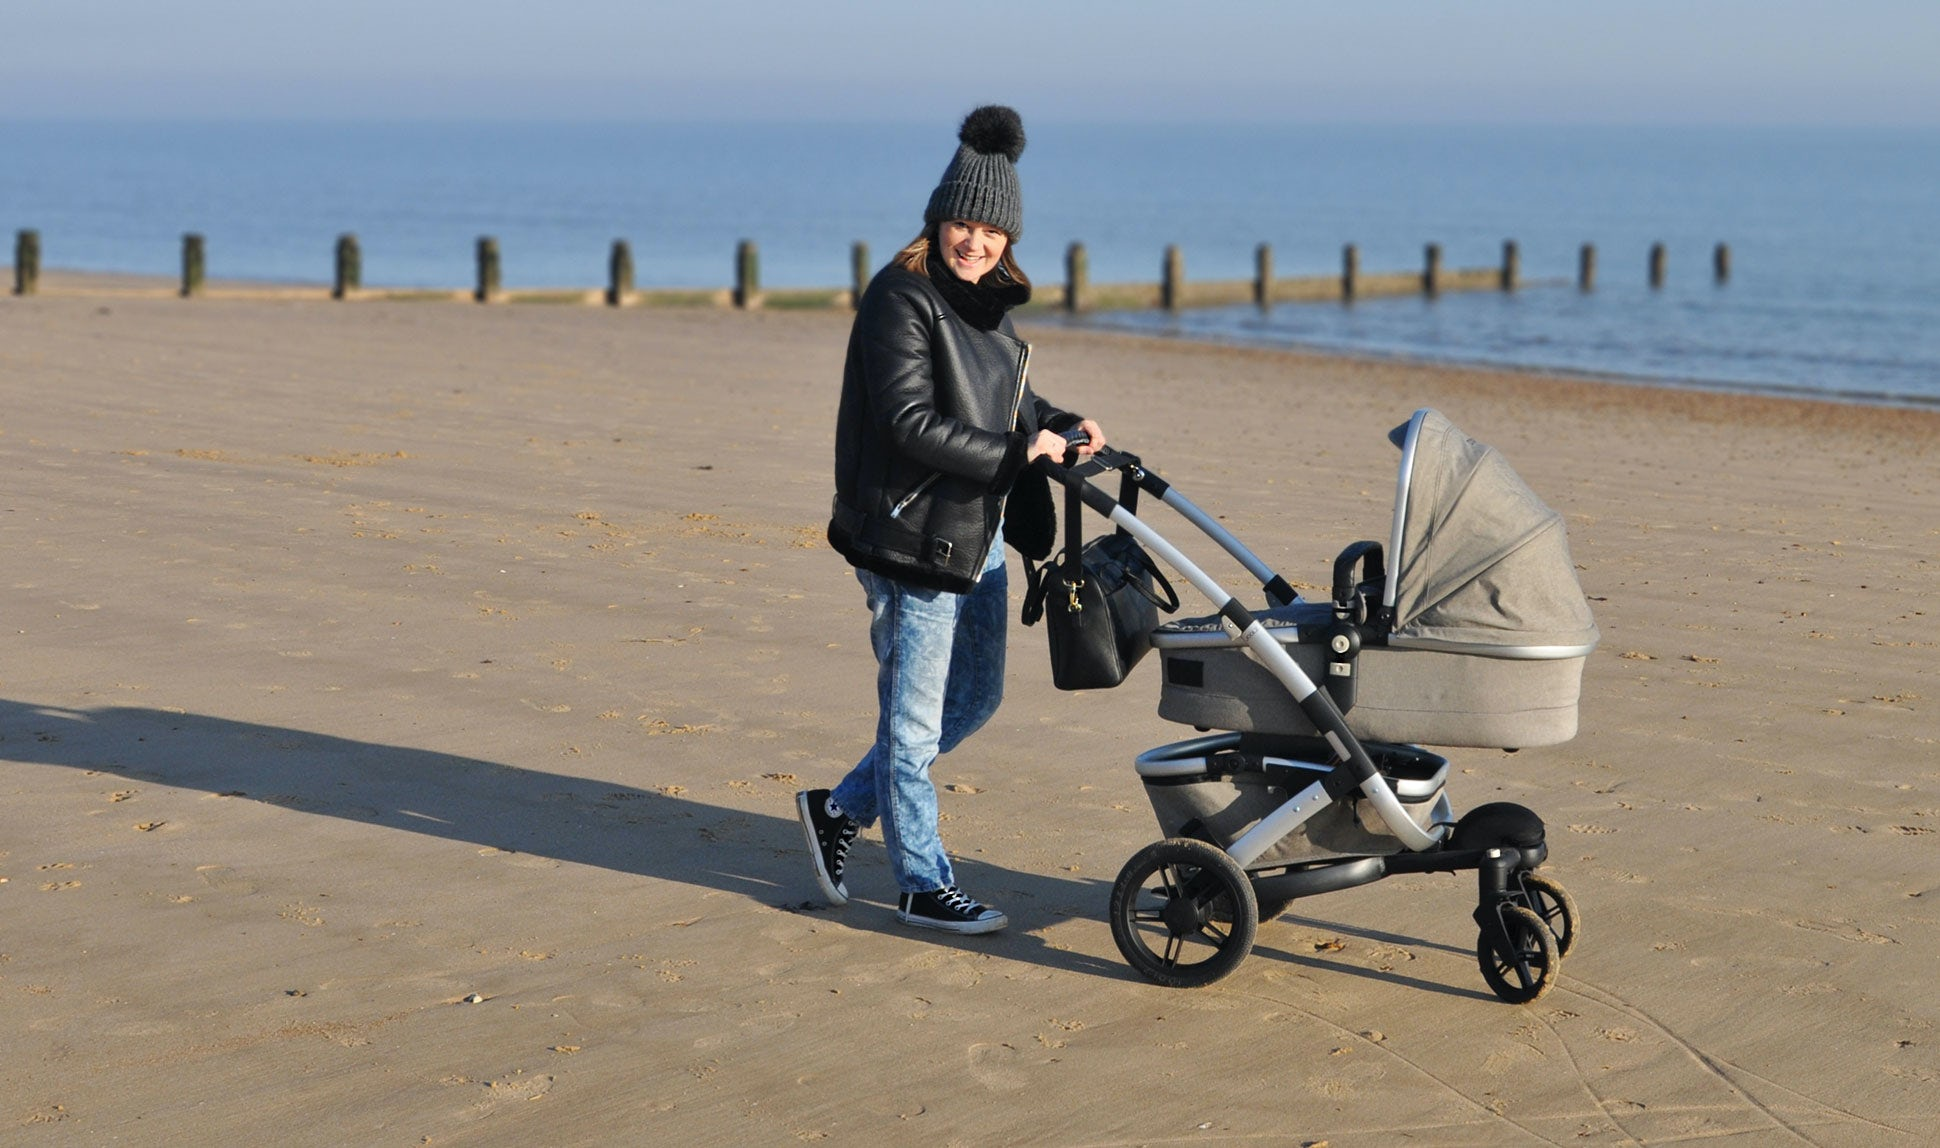 BABYBJÖRN Magazine – Pregnancy tips from blogger and mum Nicola Friend, here seen walking with her newborn baby on the beach.